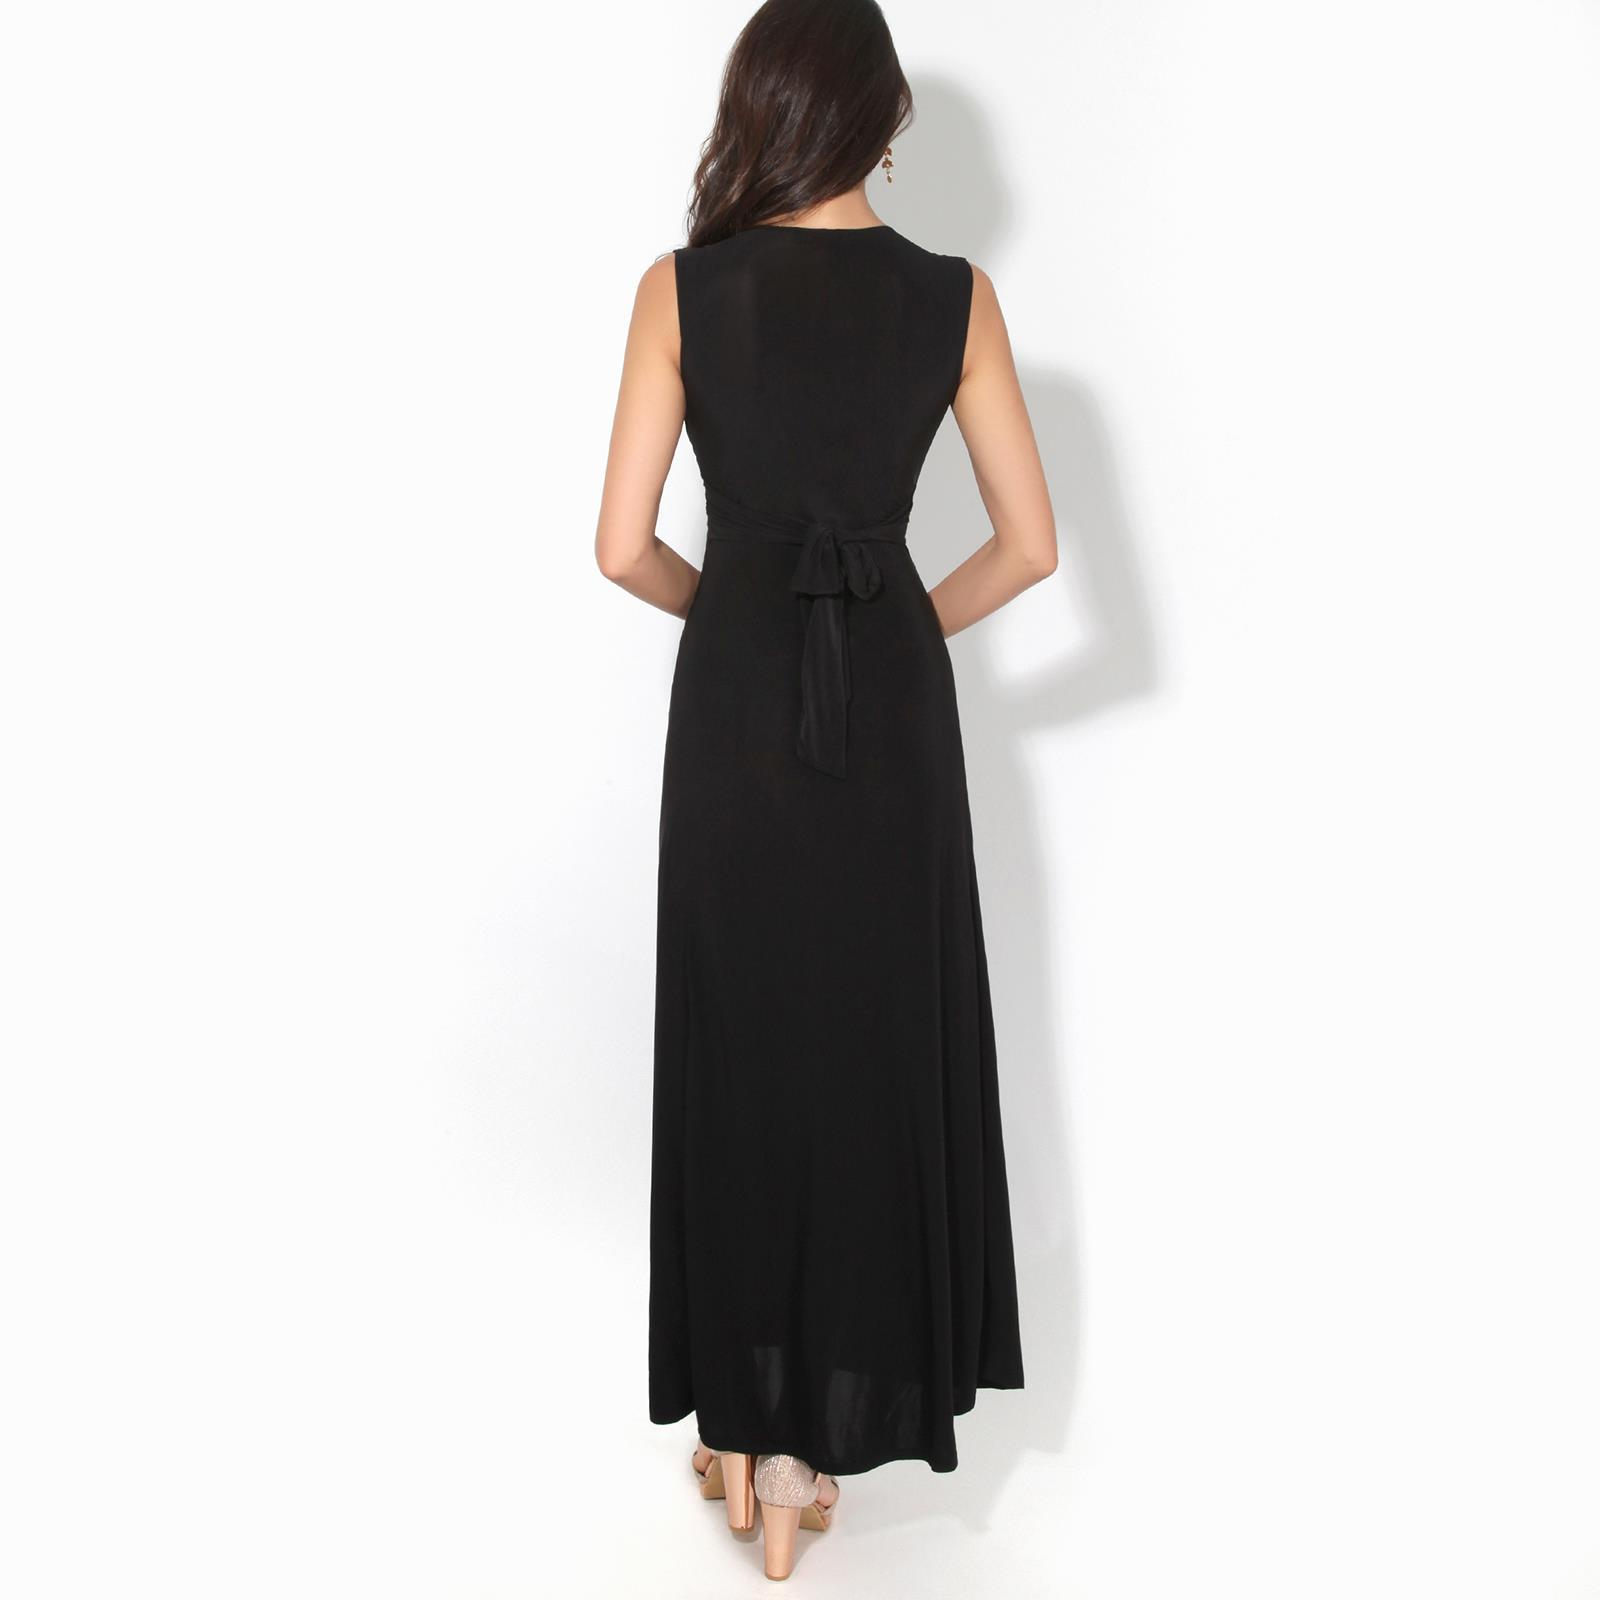 Womens-Ladies-Boho-Long-Maxi-Dress-Knot-V-Neck-Sleeveless-Pleated-Summer-Party thumbnail 7